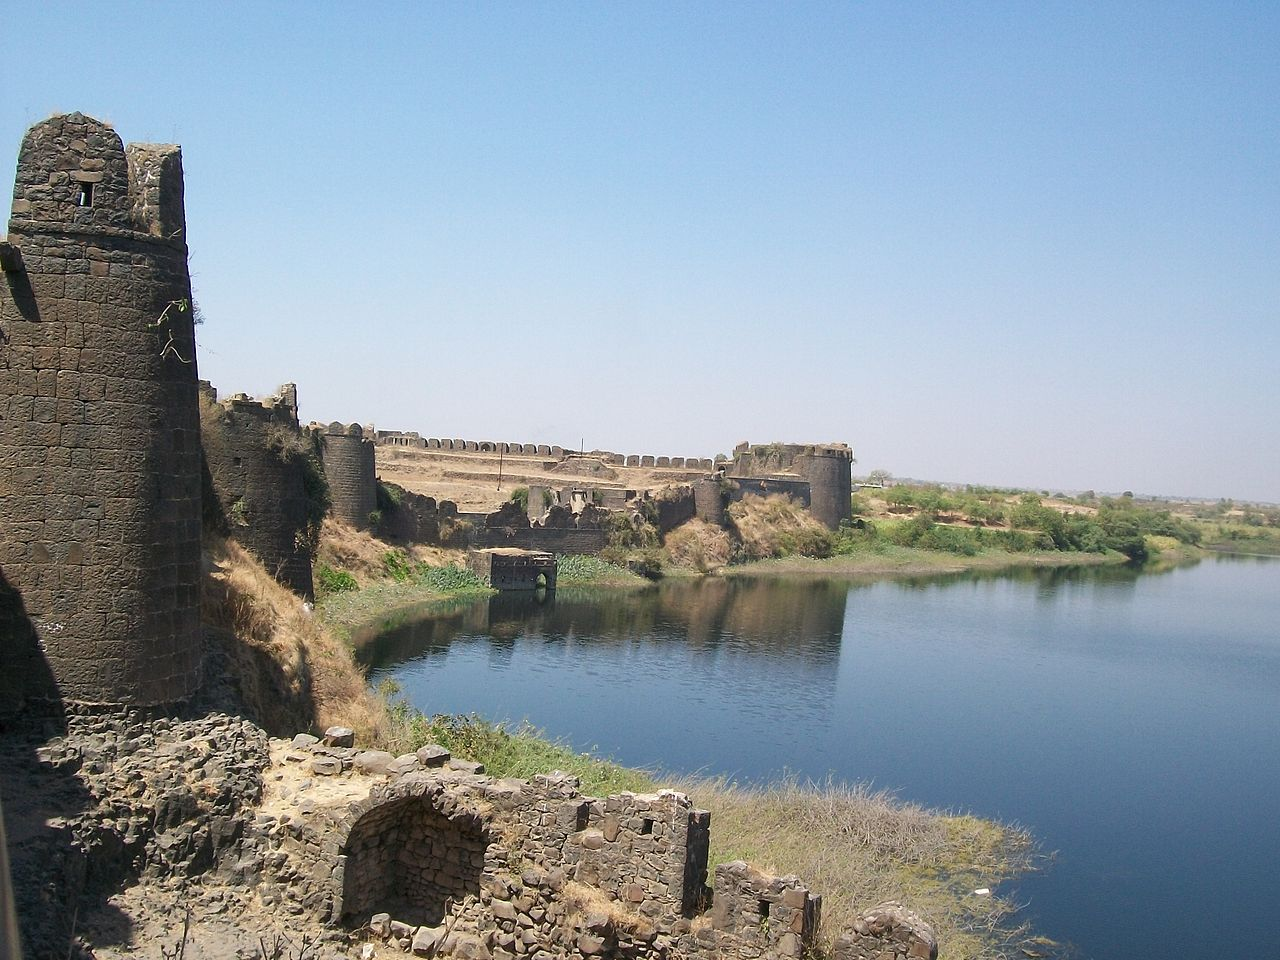 Naldurg Fort - The Fort with a Dam in Osmanabad